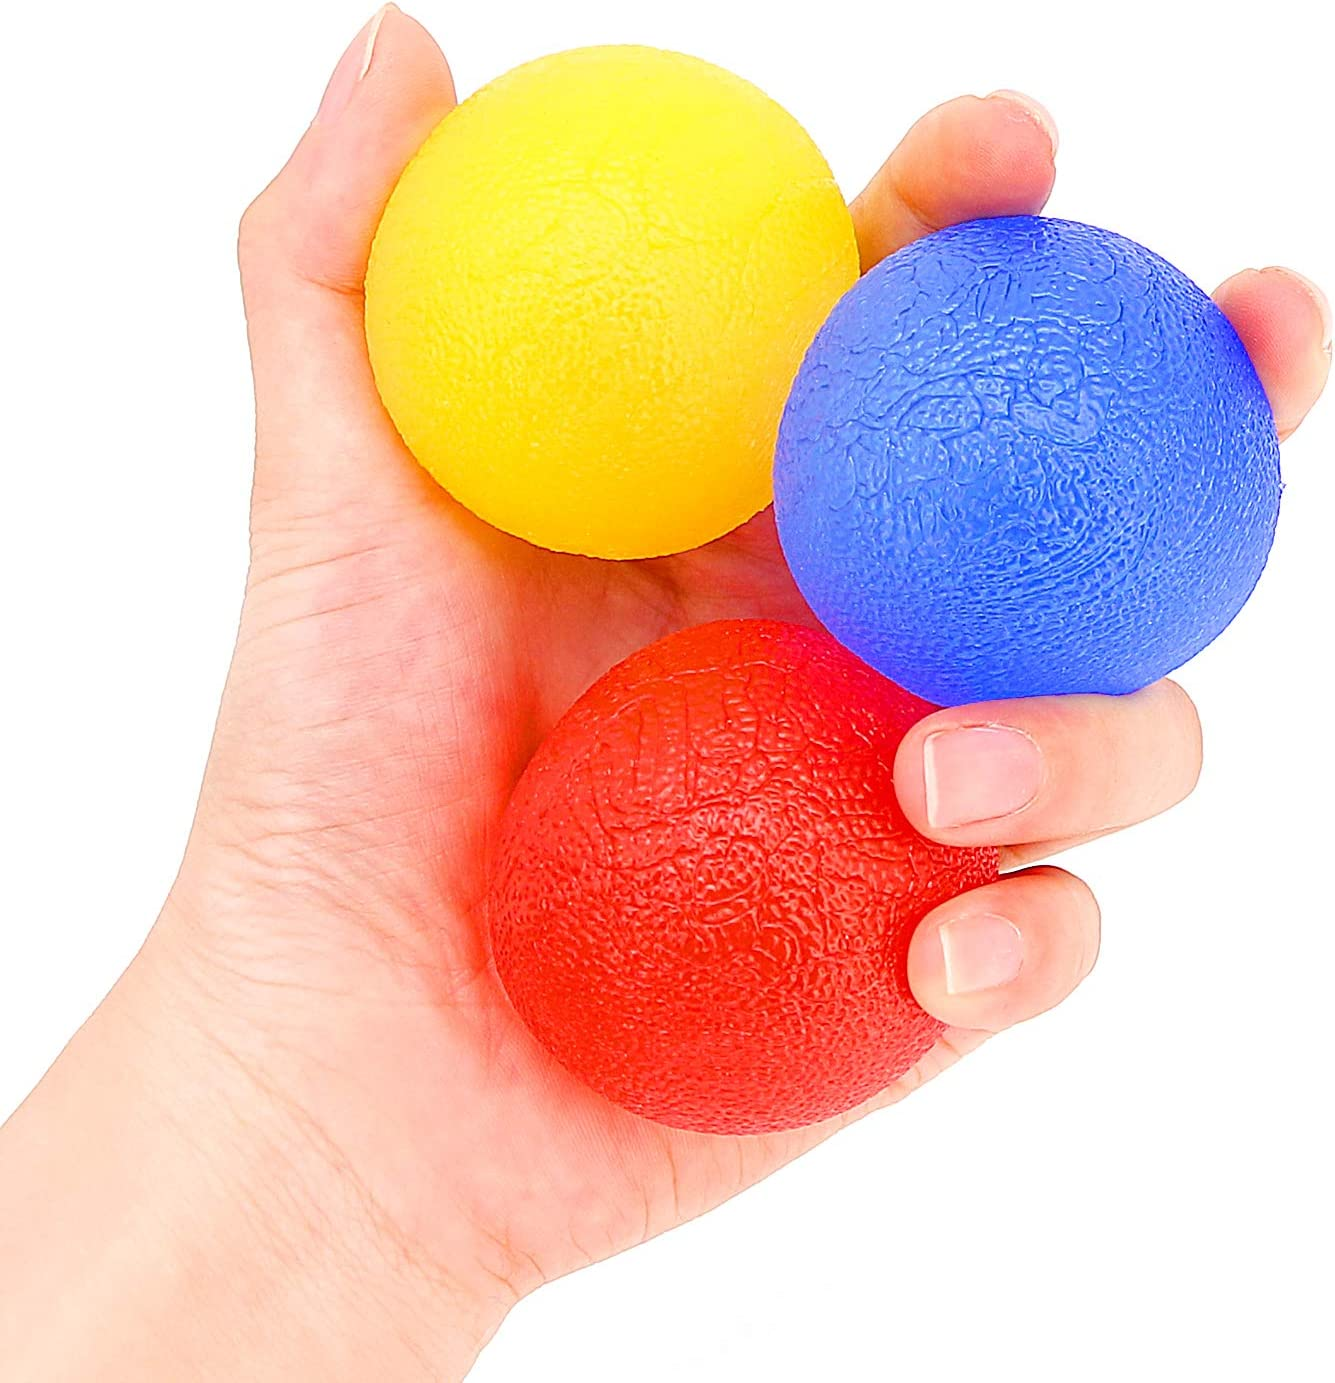 - Hand Therapy Balls Anger Management Helper 3 Pack Arthritis Pain Relief Hand Squeeze Balls Hand Grip Balls for Stress Relief Strengthening Therapy N\\A Hand Stress Balls Muscle Exerciser